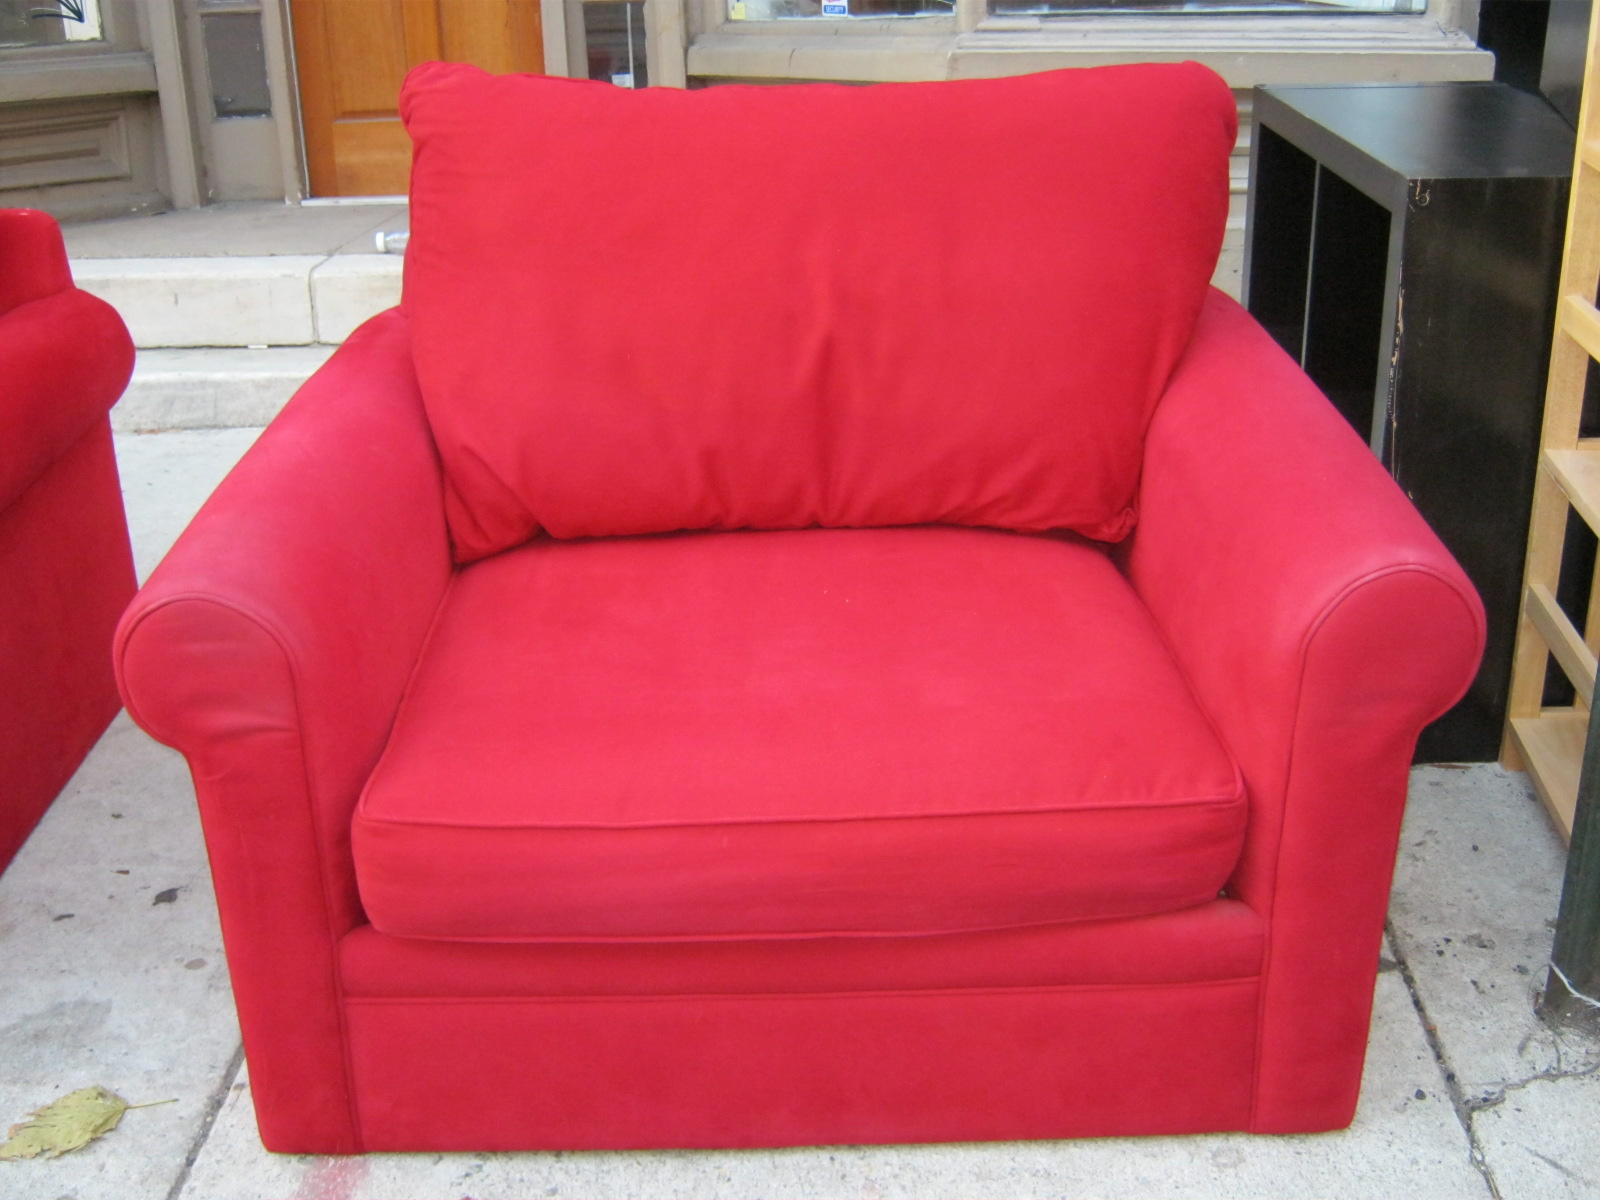 Red Chair And Ottoman Dining Legs Sofa European Png Image